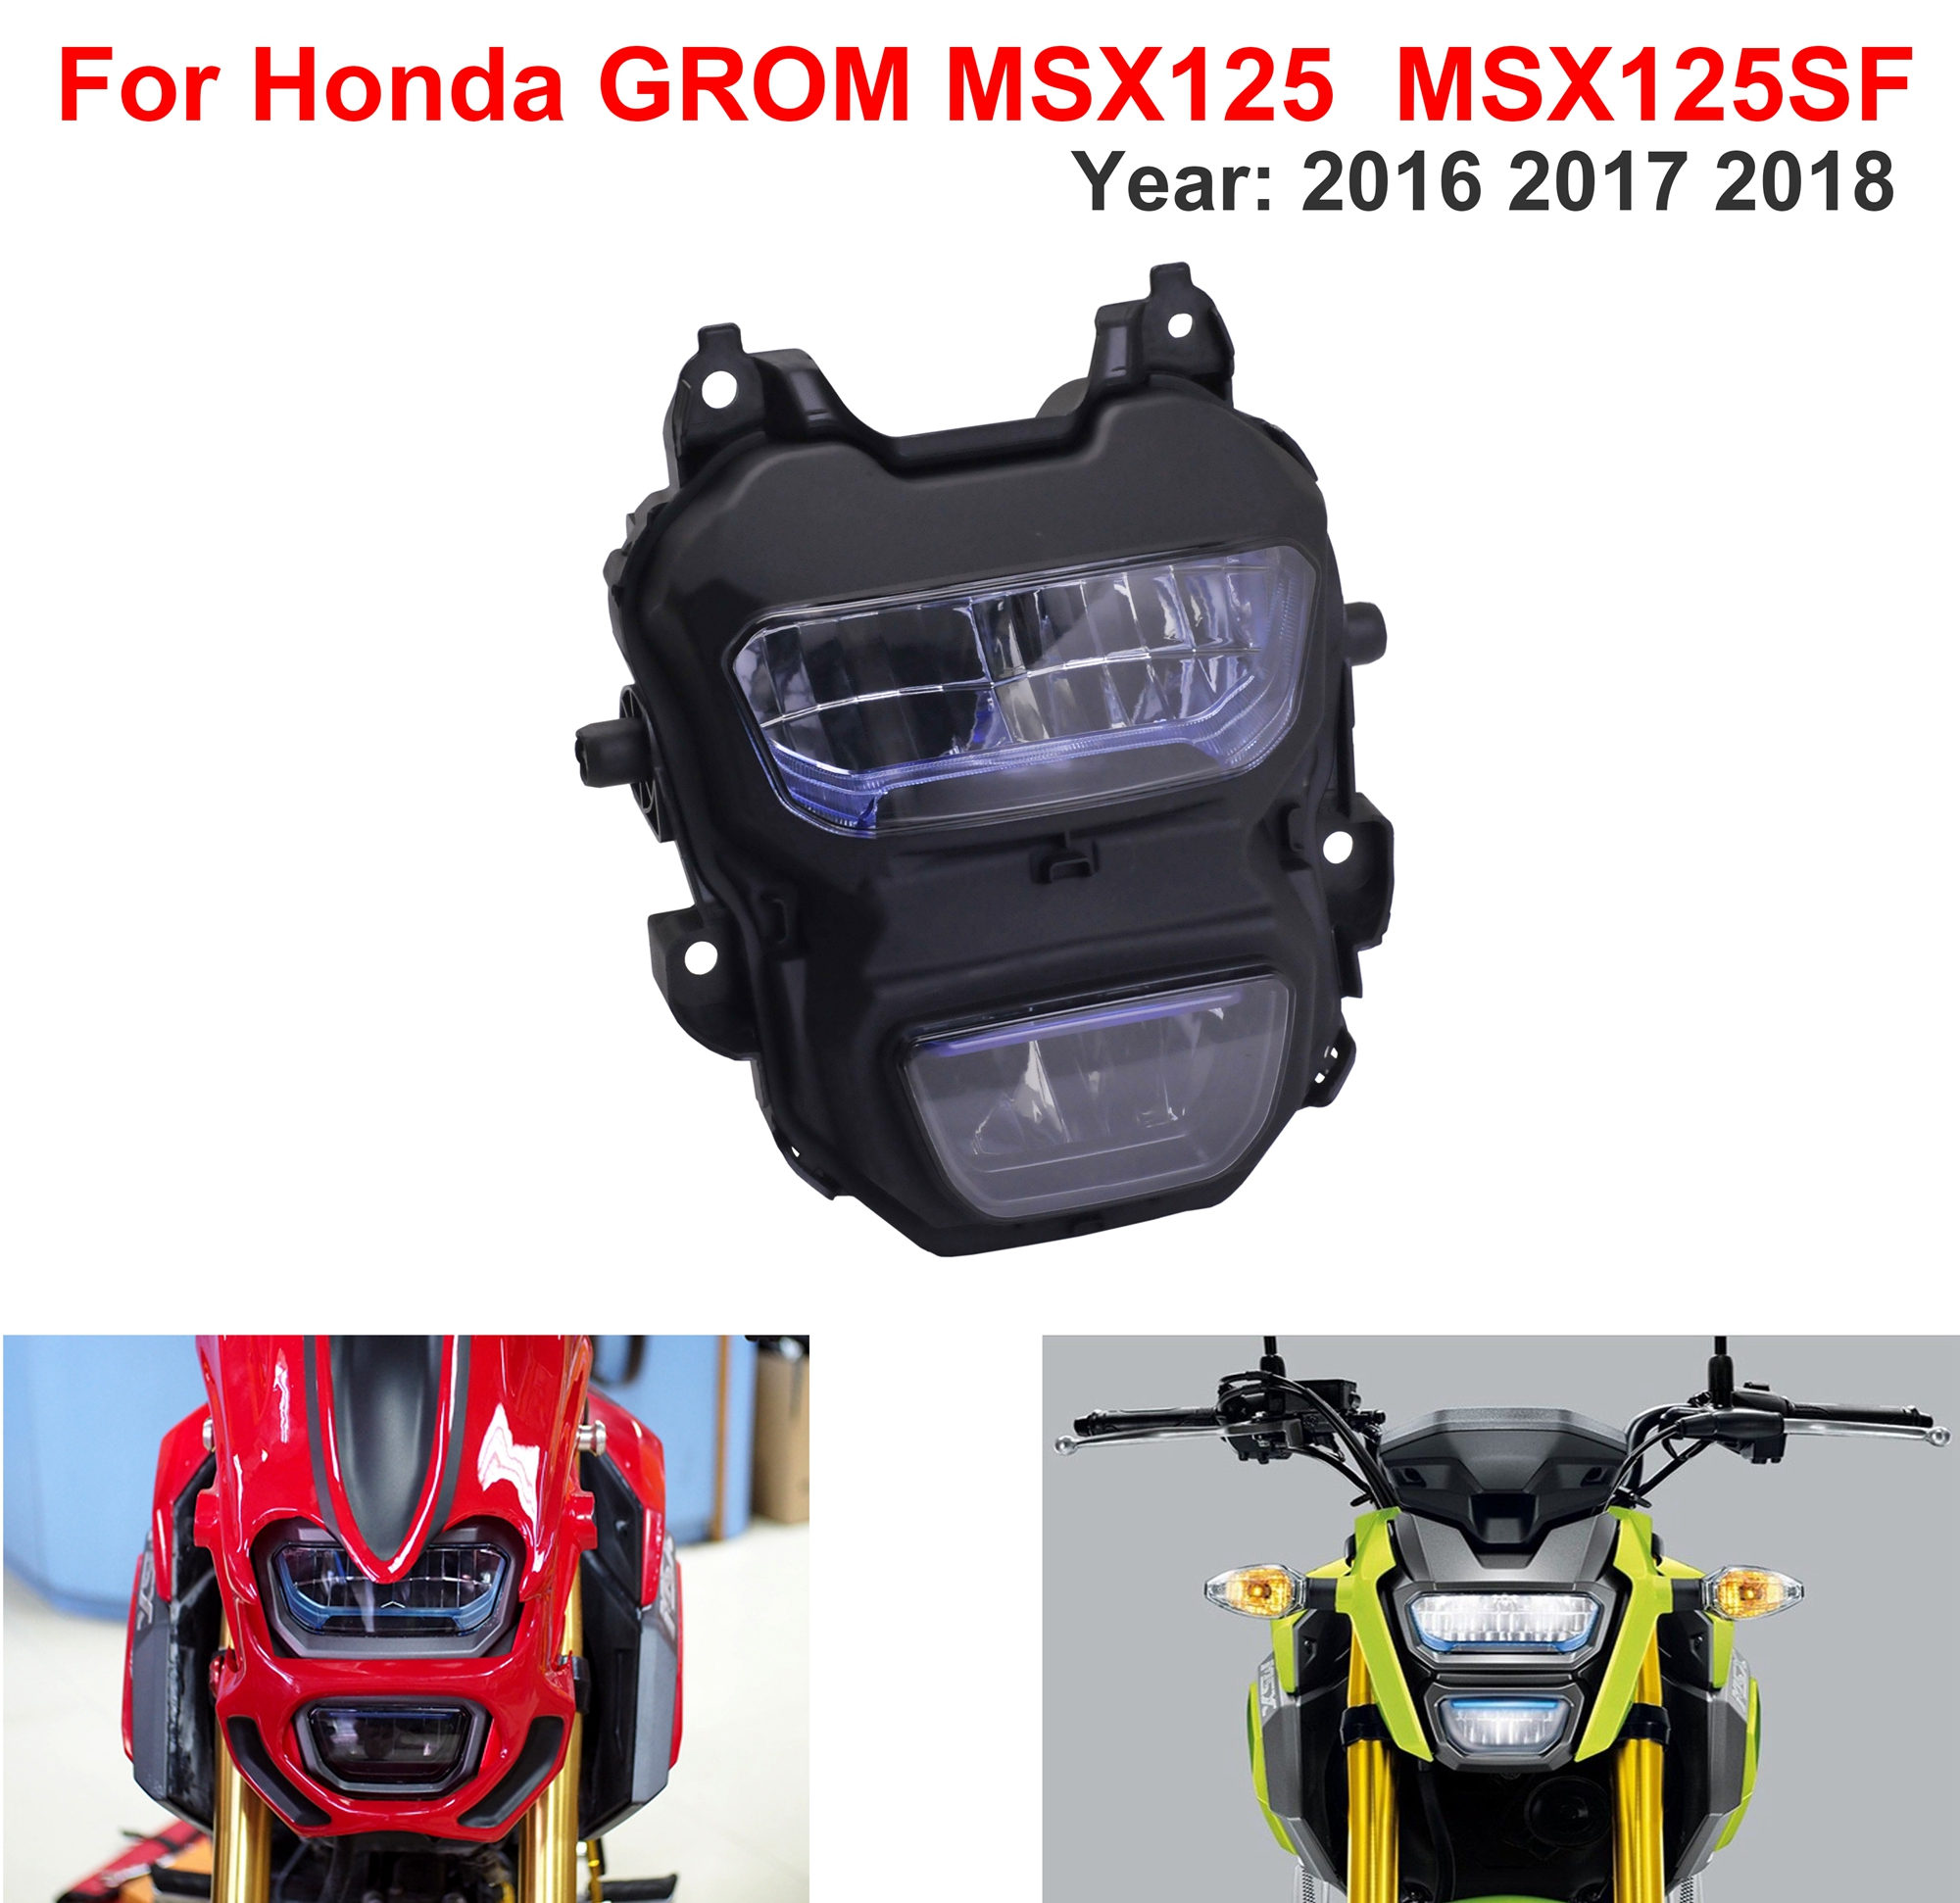 Motorcycle 125 Headlight  Monkey Windshield Front  Wind Guard Lamp LED For Honda GROM MSX125SF 2016 2017 MSX125 2018 M3 M5